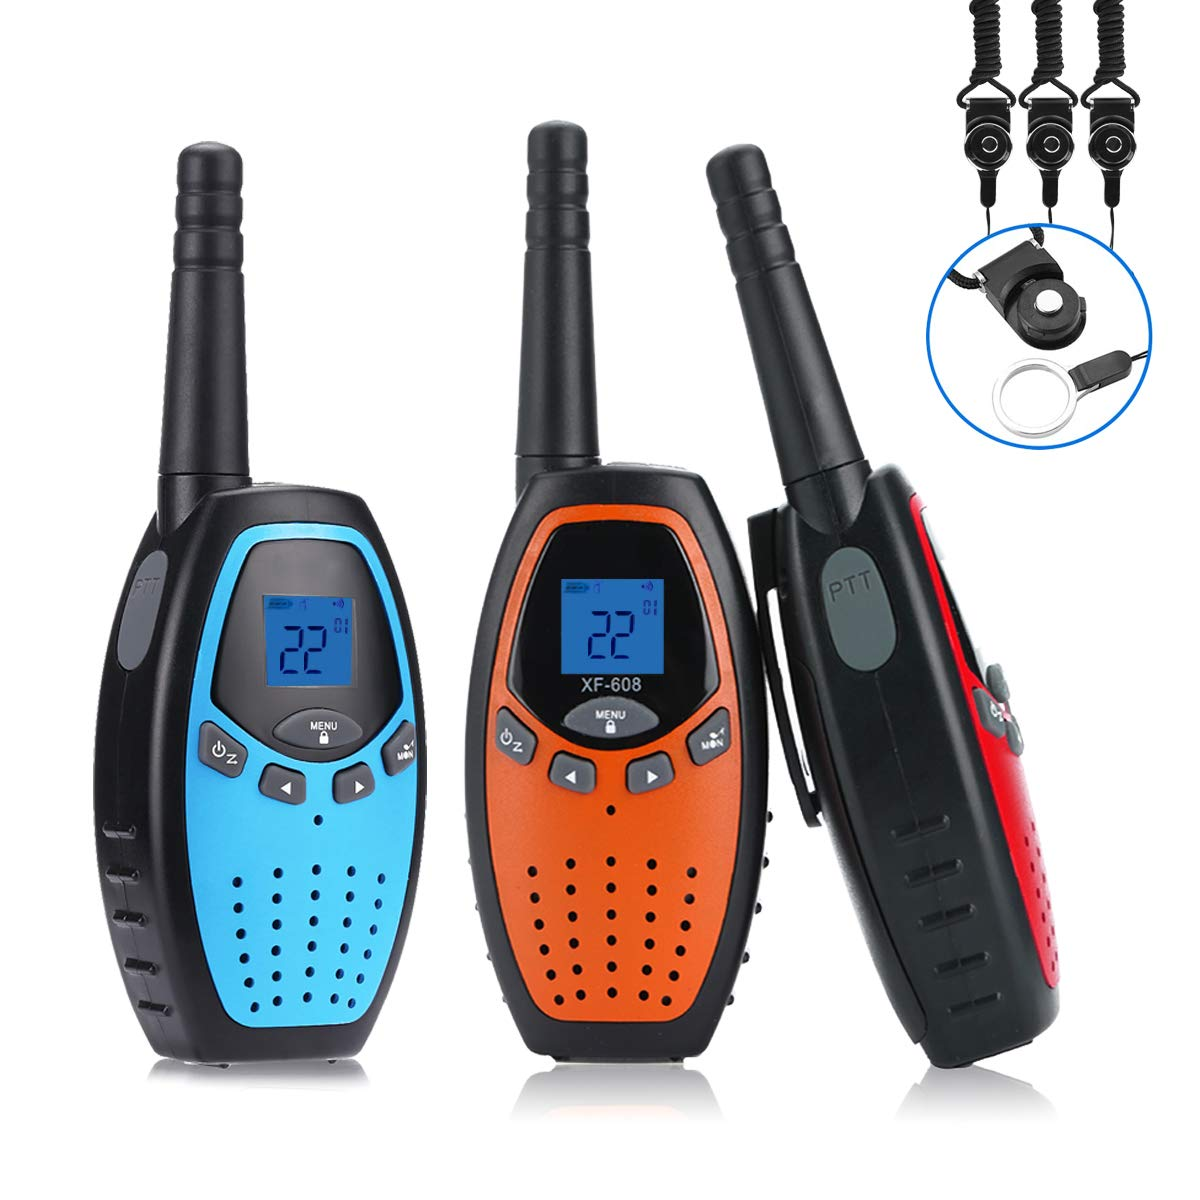 Fistone Walkie Talkies for Kids, 3 Packs 22 Channels 2 Way Radio Long Range Interphone Toys for Boy & Girls Age 3 6 7 8 9 12 Up for Outdoor Adventures, Camping, Hiking